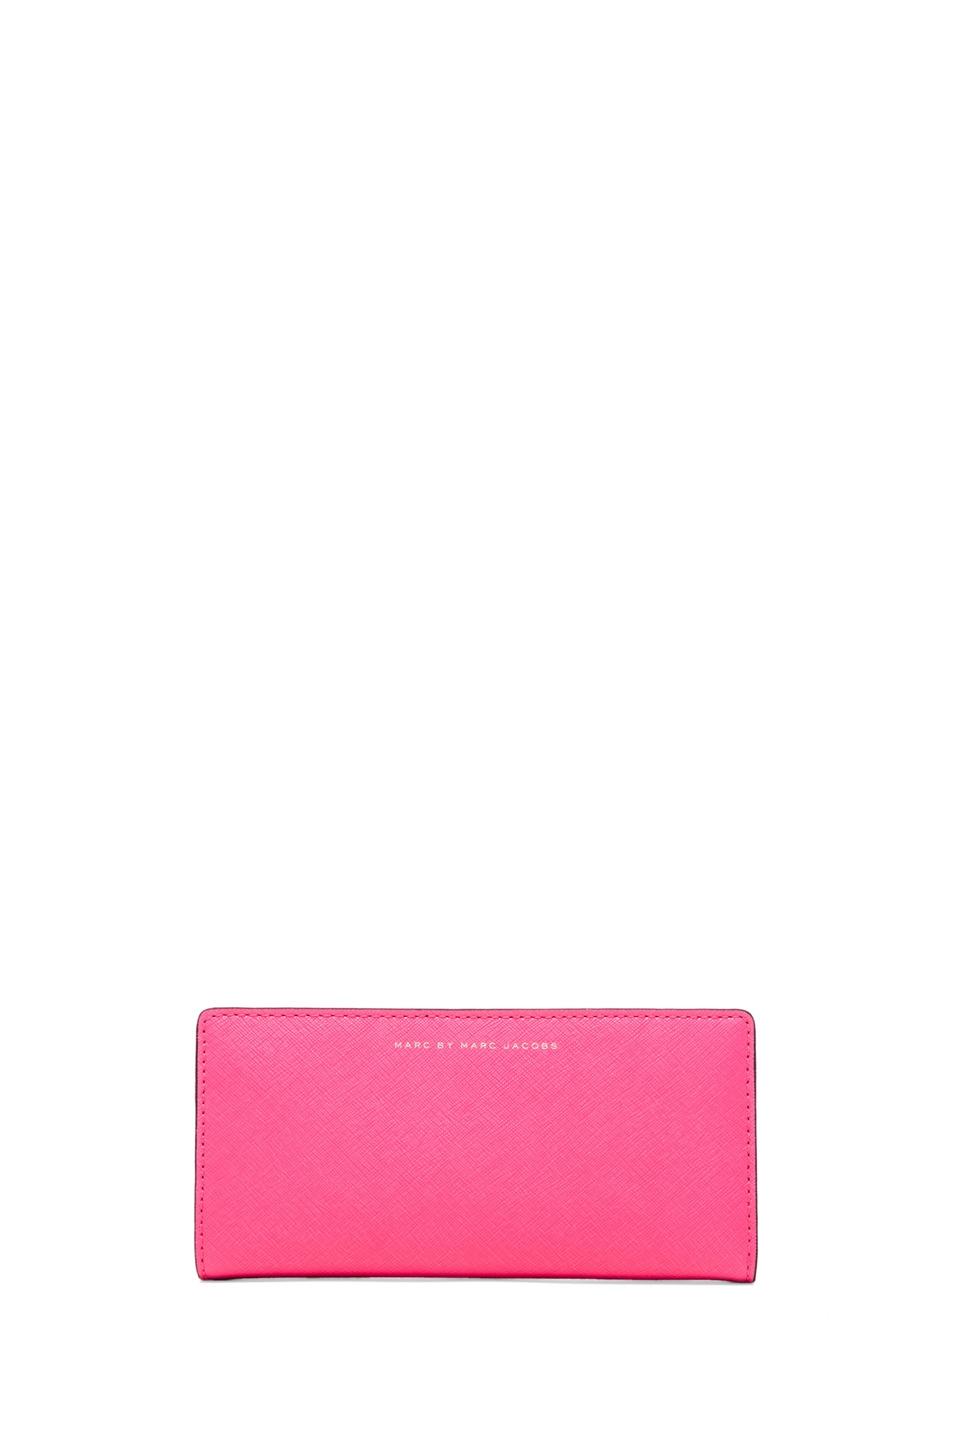 Marc by Marc Jacobs Sophisticato Colorblocked Tomoko Wallet in Knockout Pink